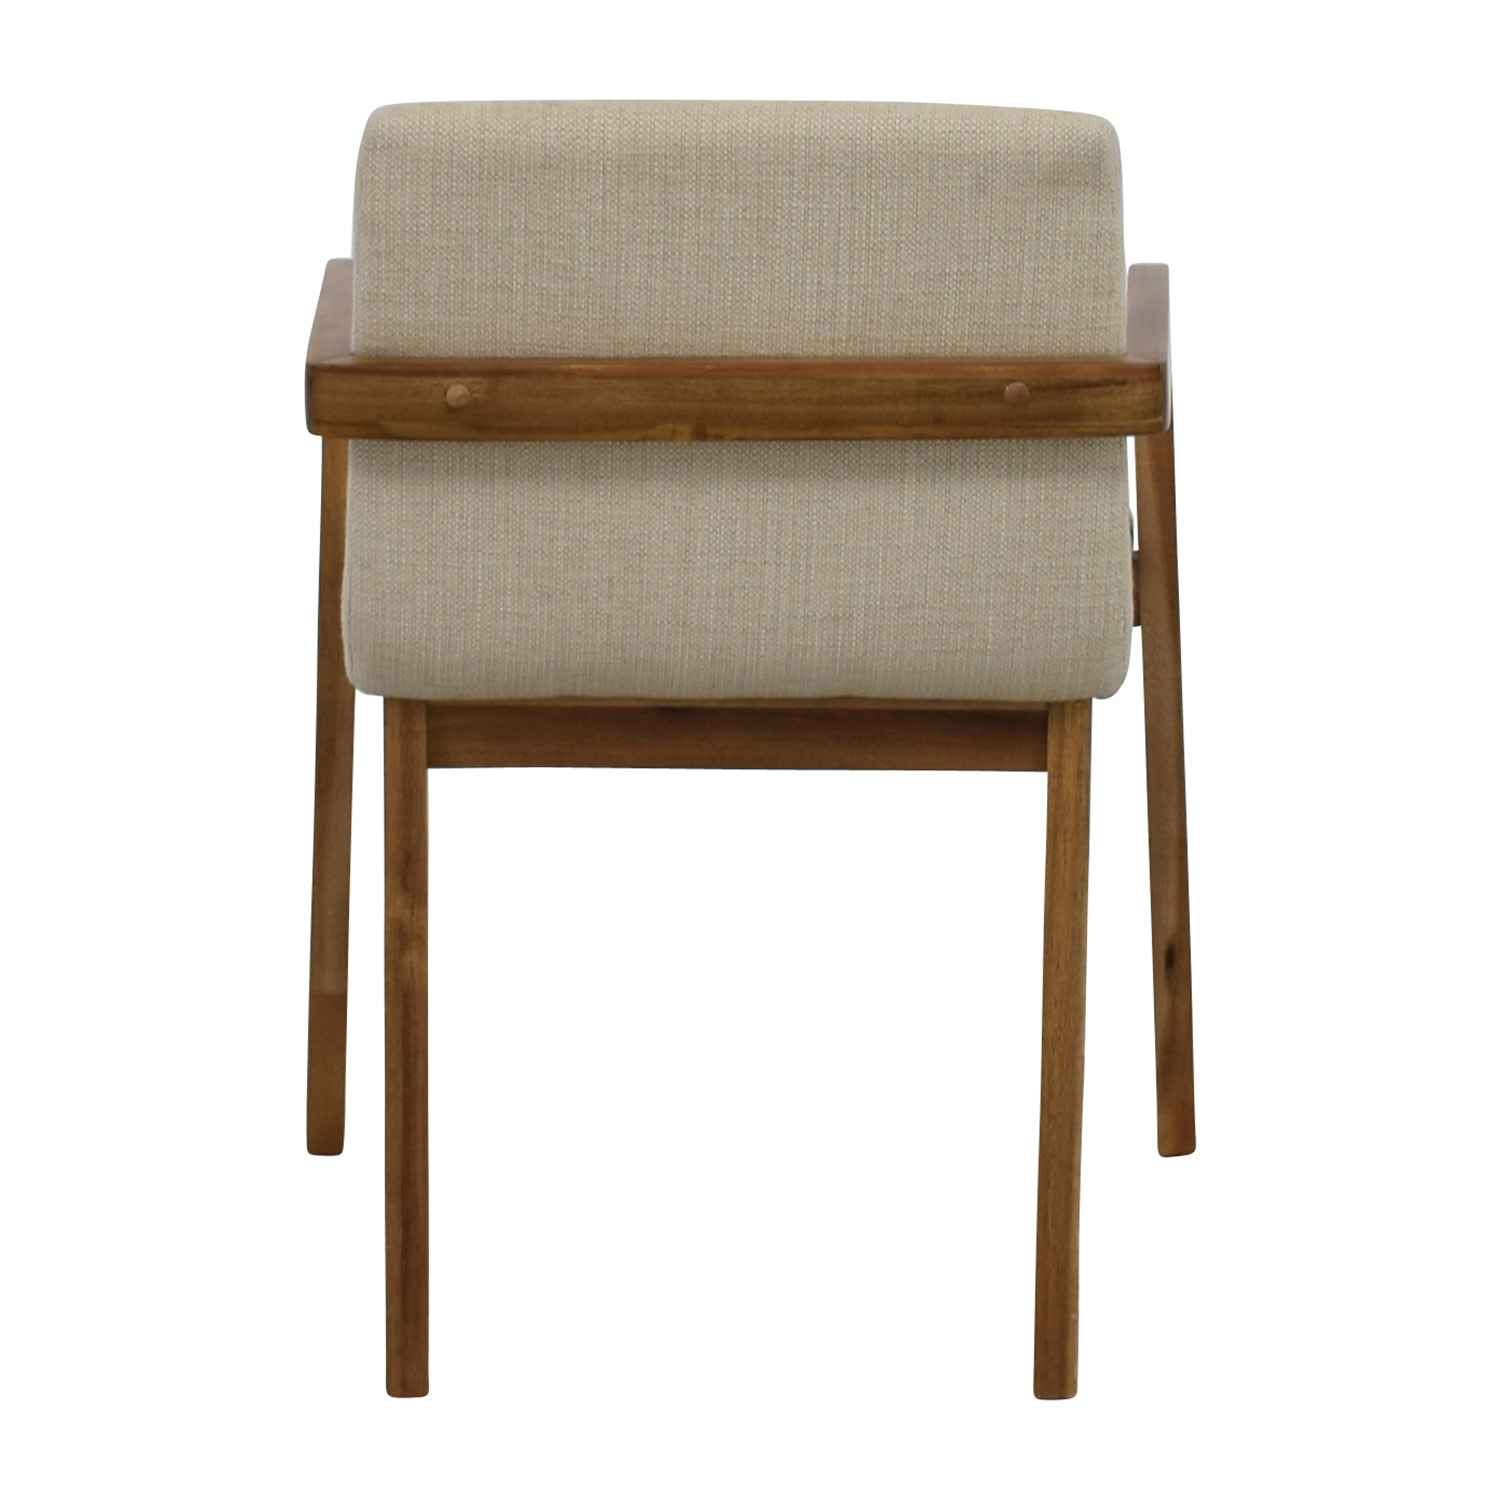 CB2 CB2 Natural Mid-Century Accent Chair White